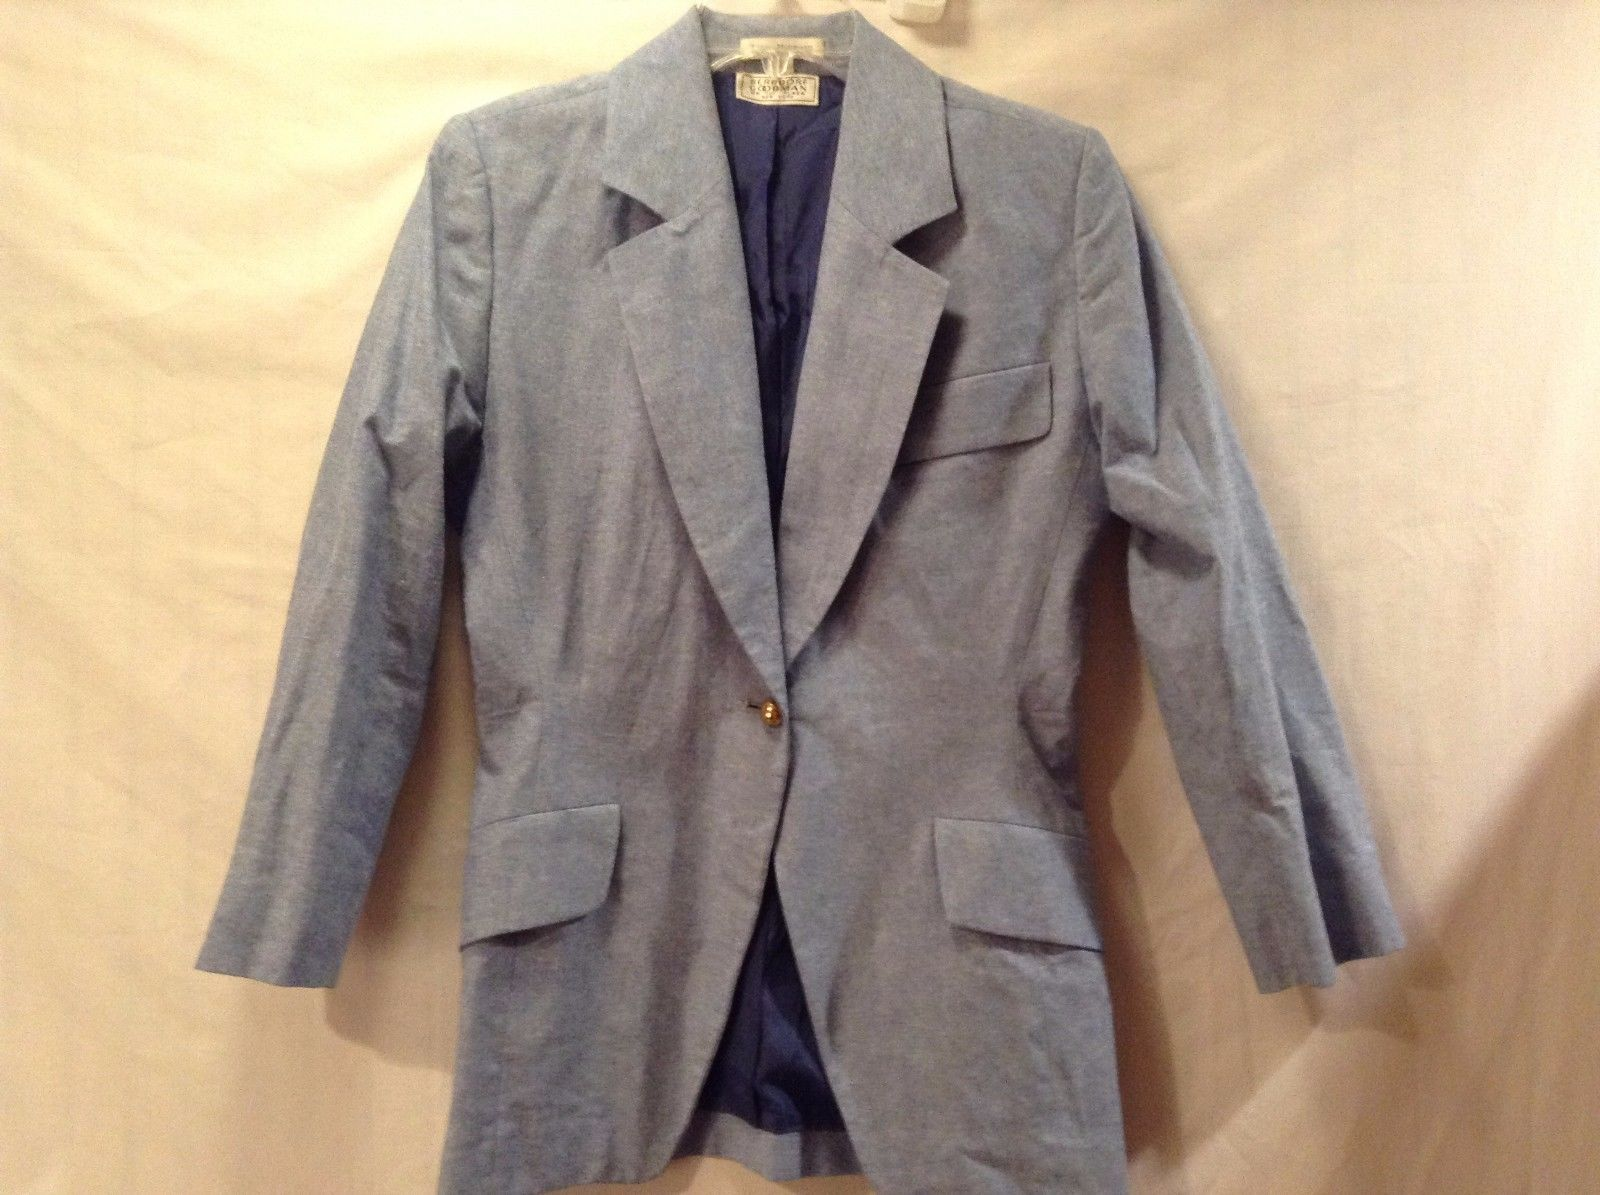 Used Great Condition Isaac Mizrahi Bergdorf Goodman Suit Jacket 4 Light Blue